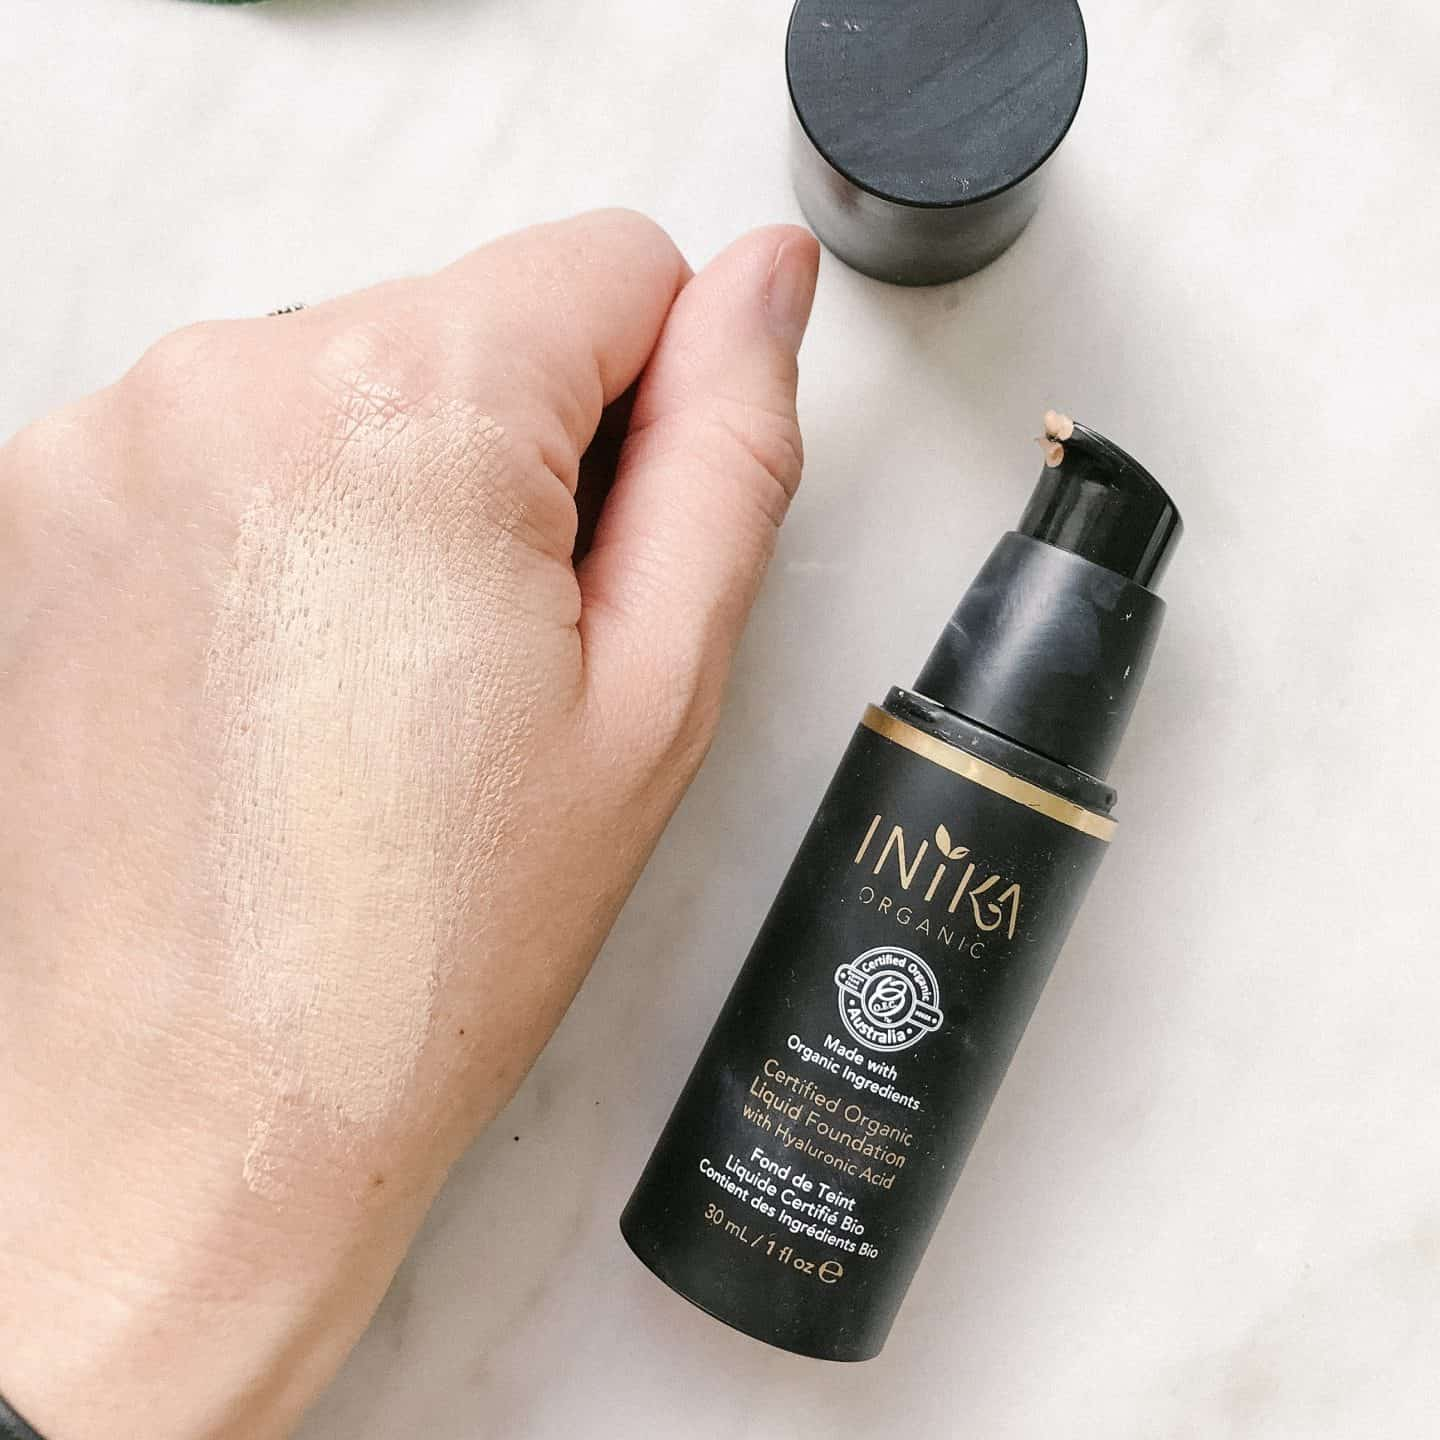 Inika Certified Organic Liquid Foundation smoothed out